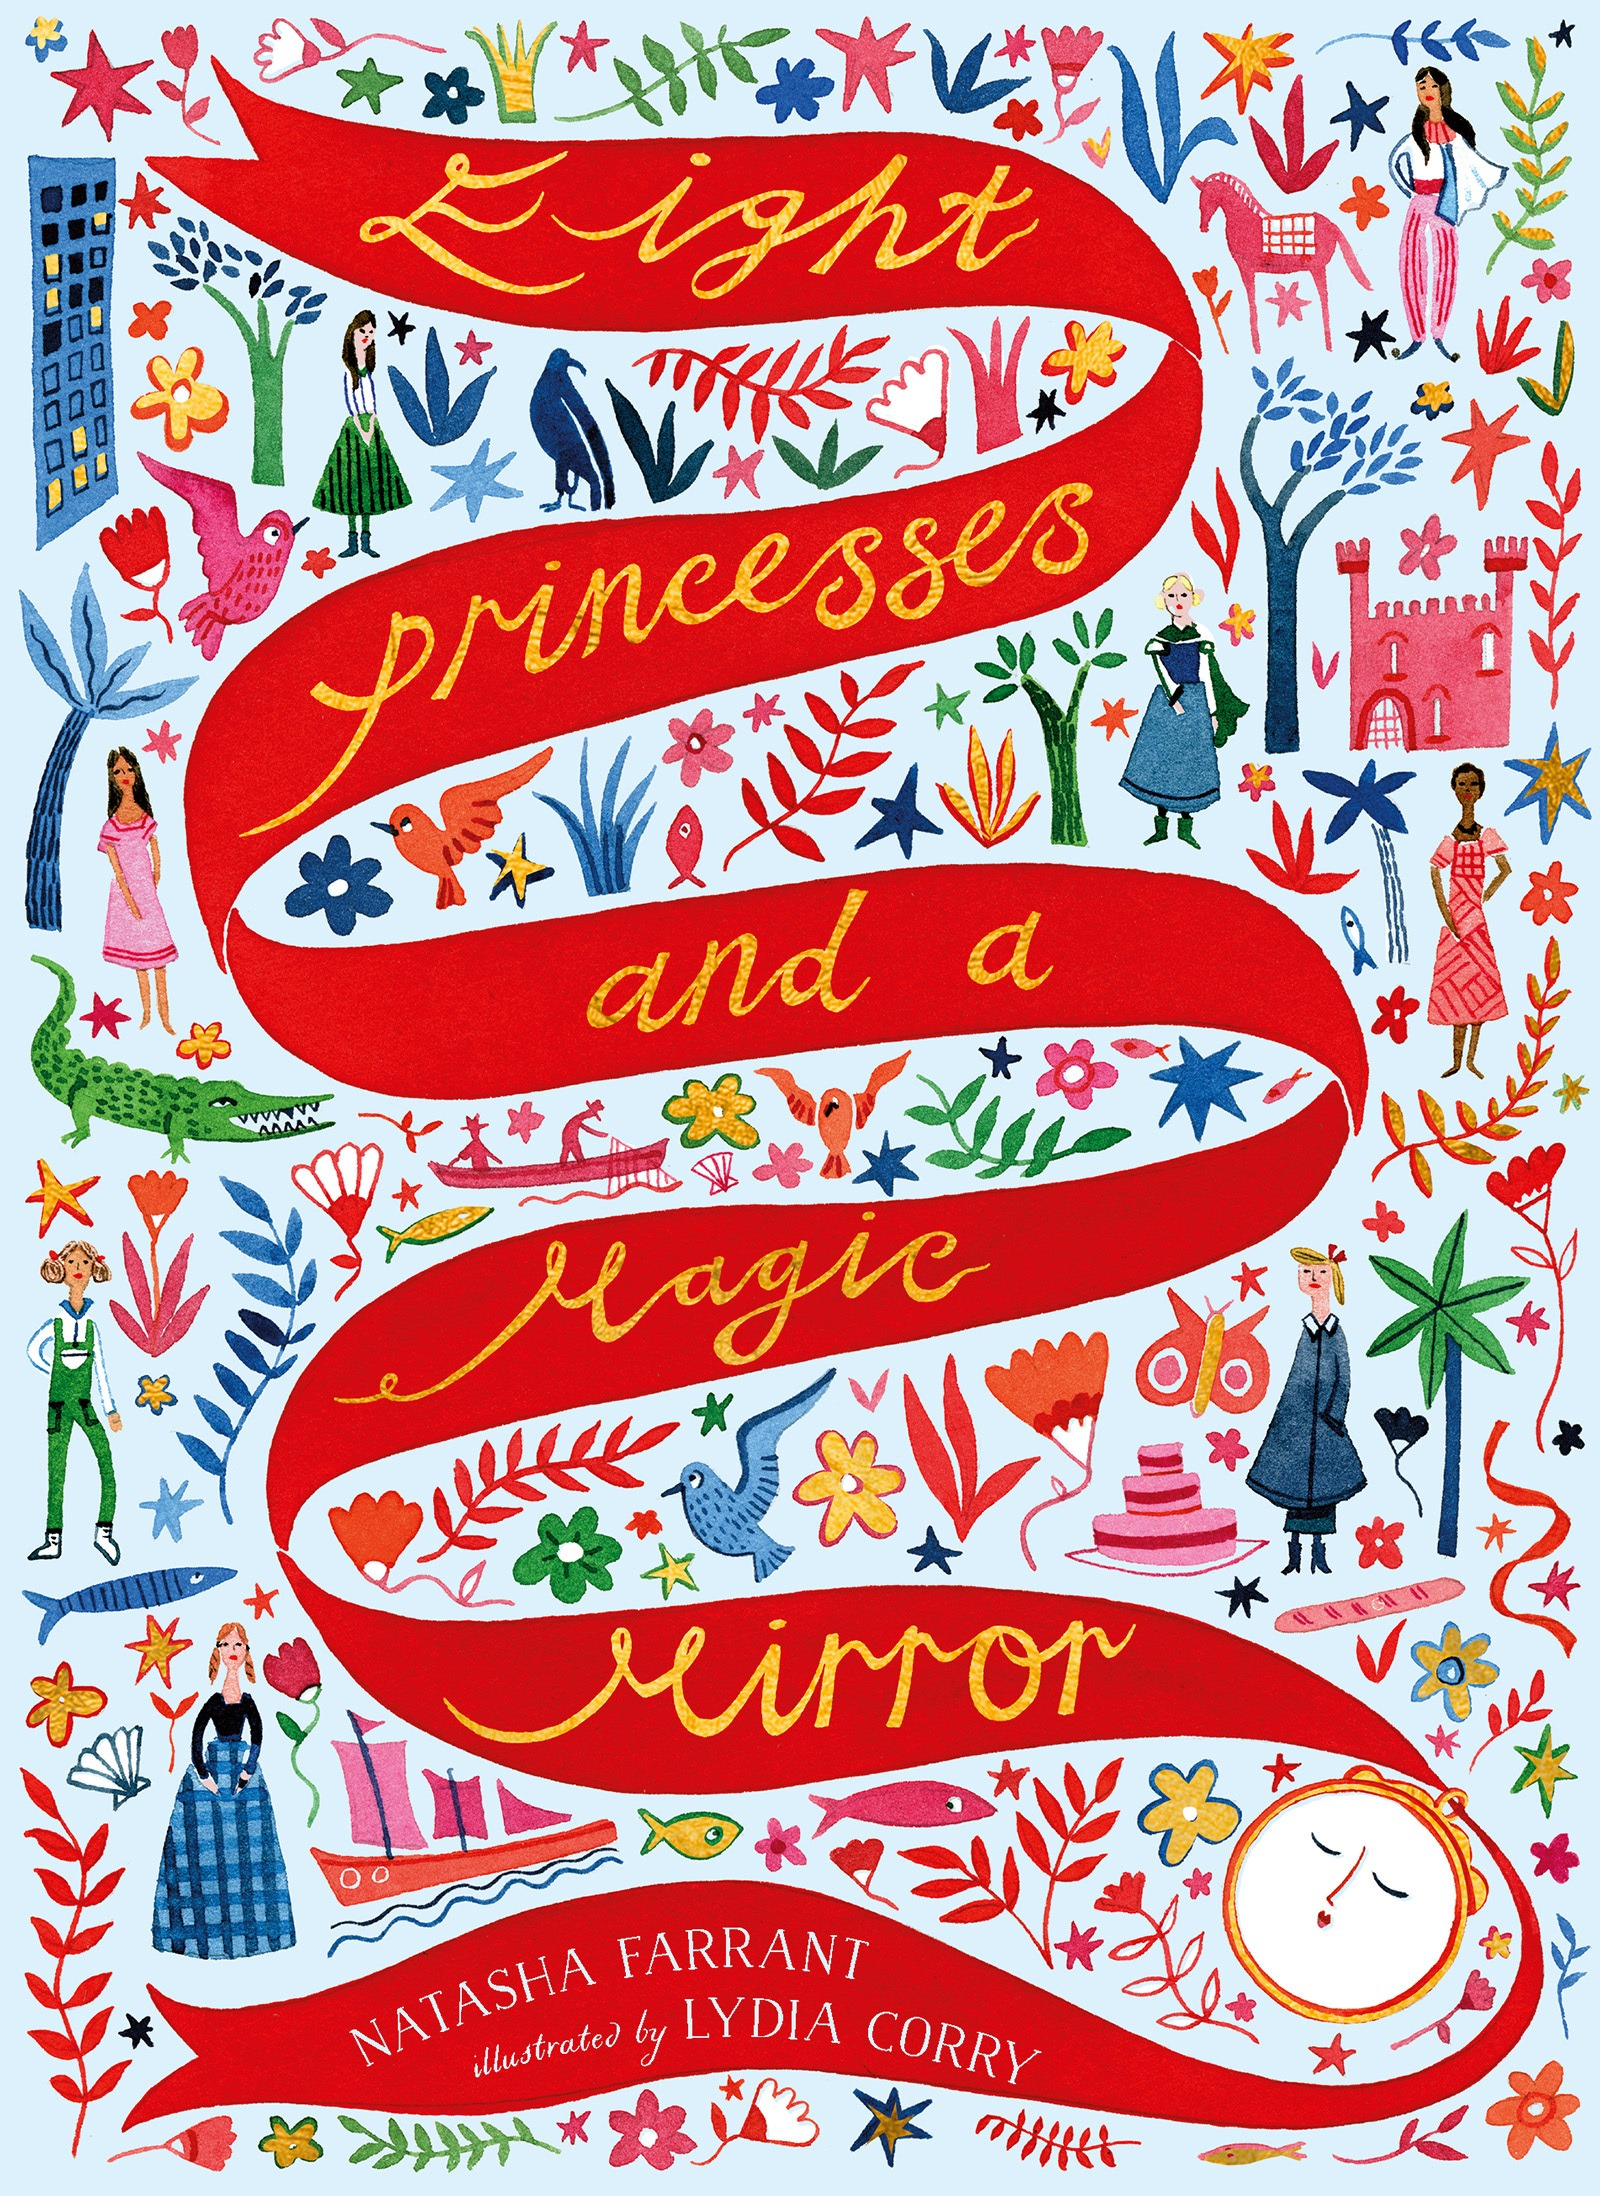 Eight Princesses and a Magic Mirror image